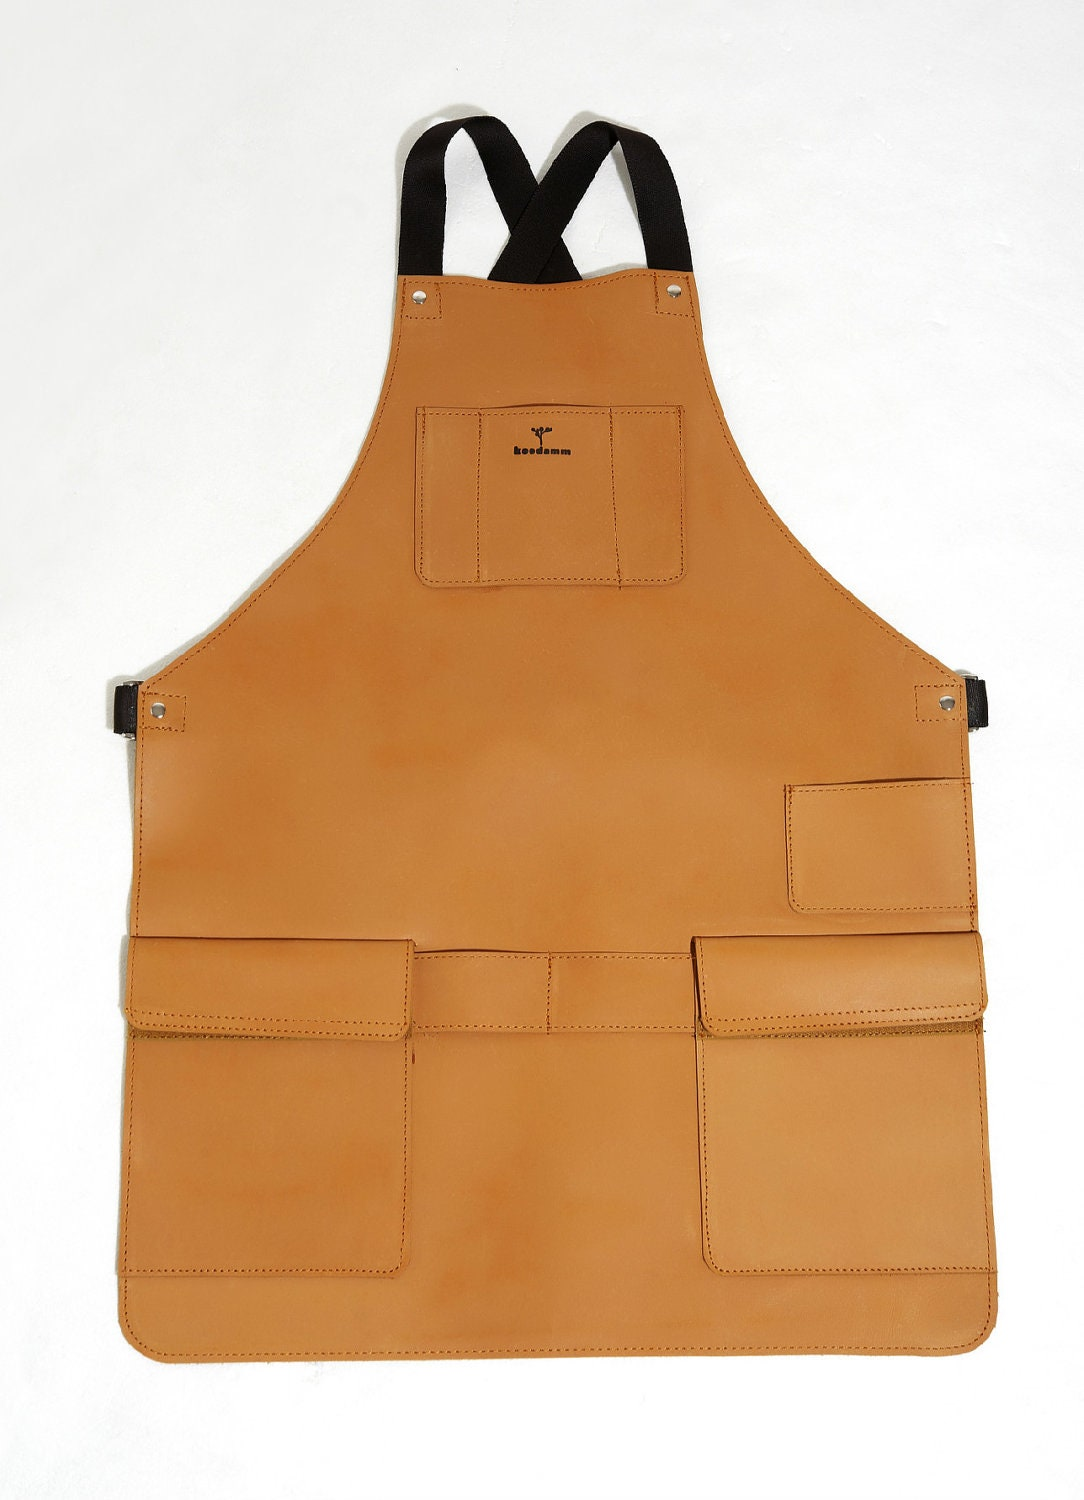 Leather Apron by iwoodlab on Etsy